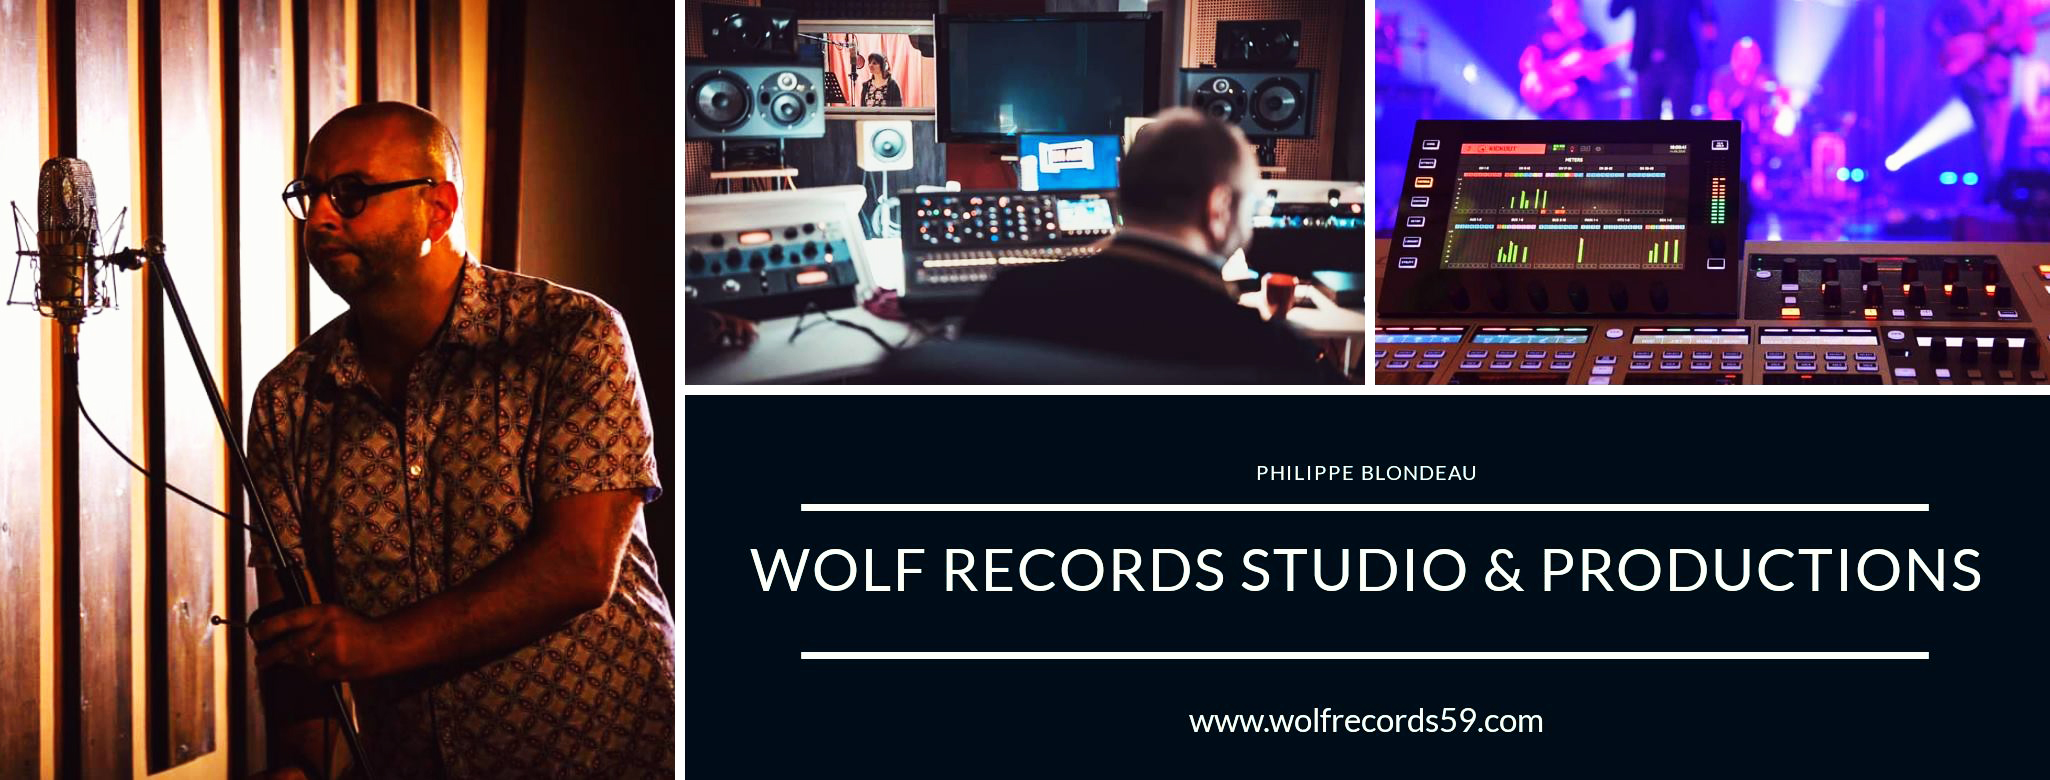 wolfrecords